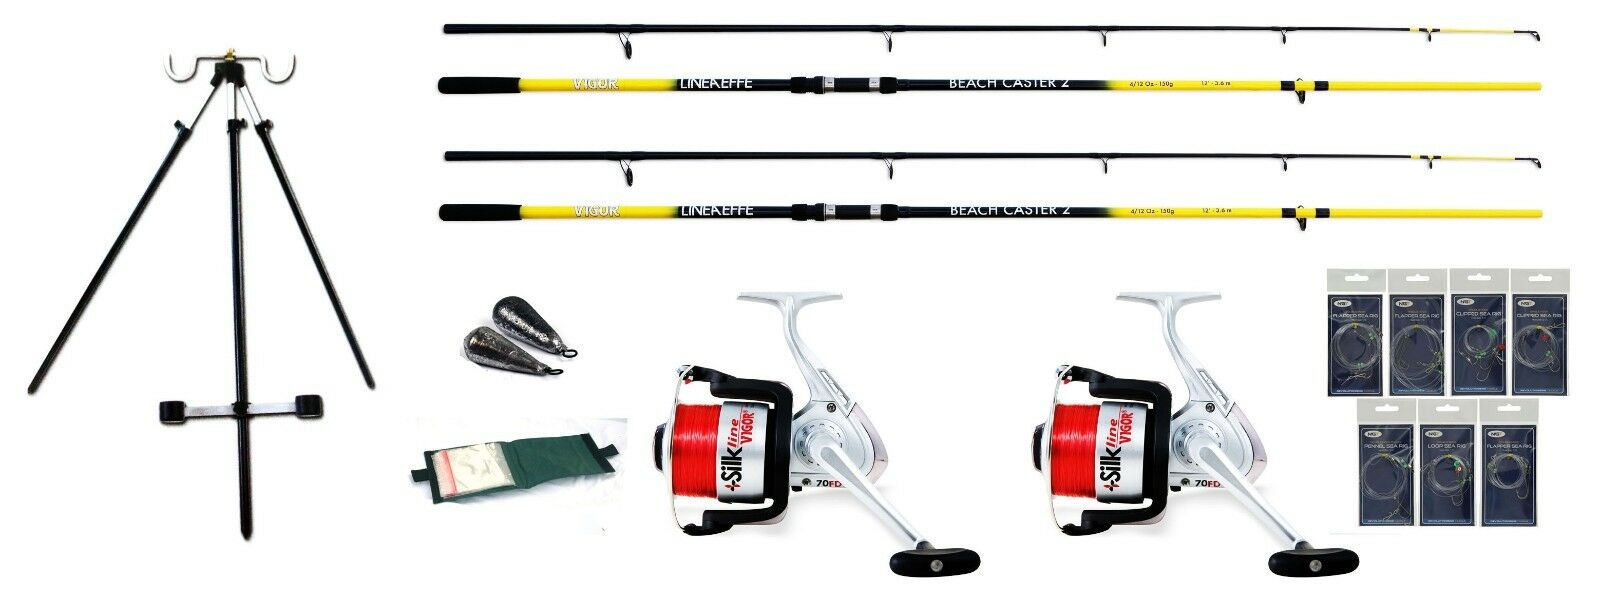 Beachcaster sea fishing Start rite Kit 2 rods,2 Reels + Tele Tripod,Rigs,leads